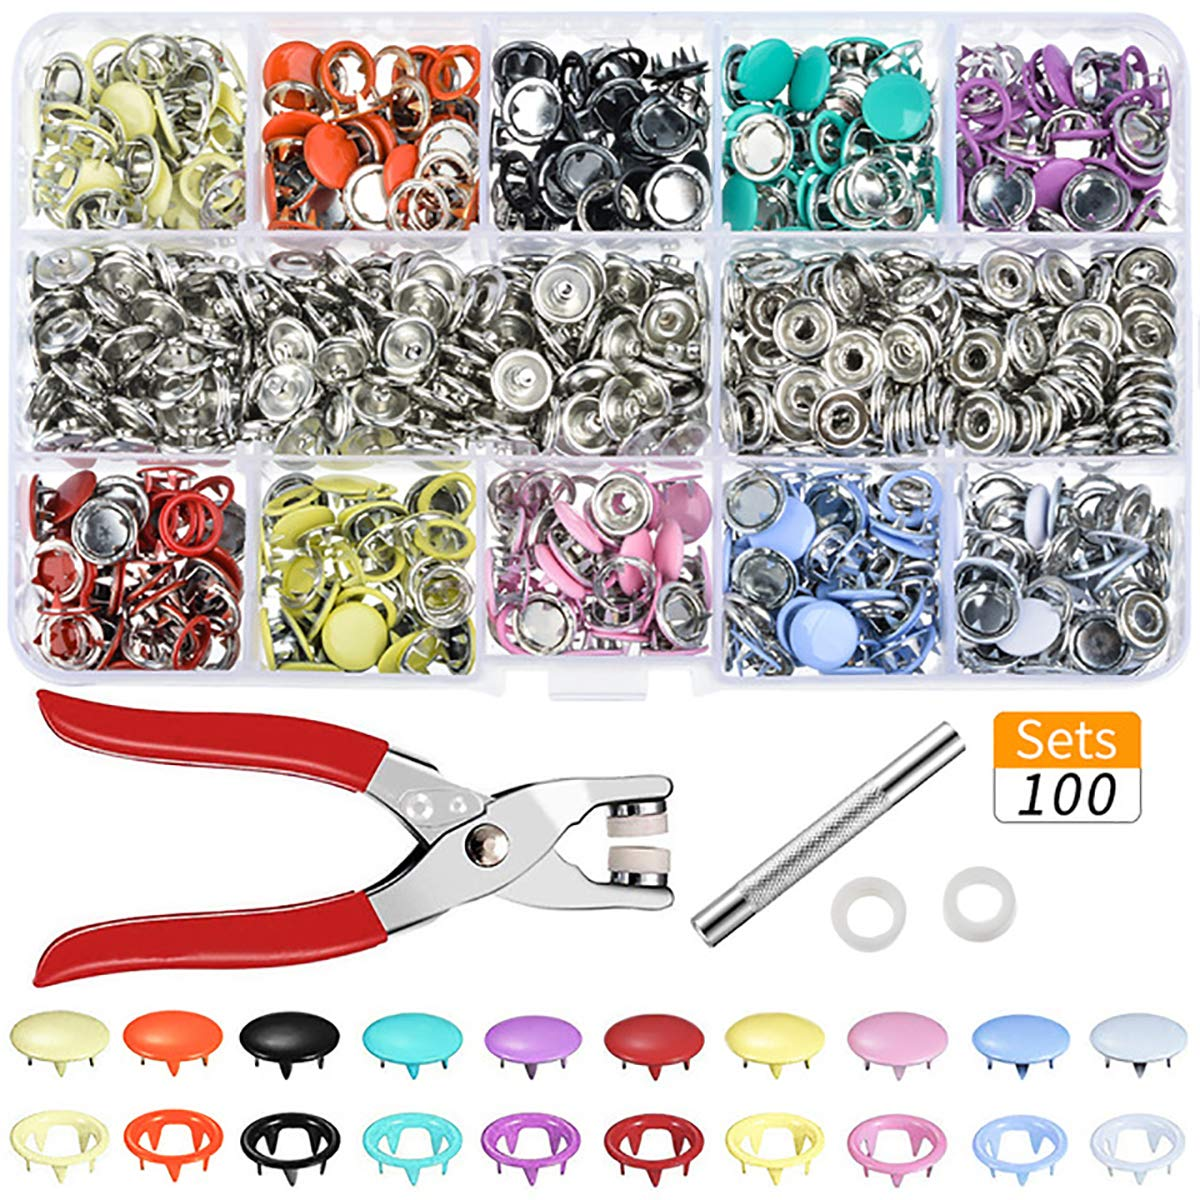 Cozylkx 100 Sets Snap Fasteners Kit, 10 Assorted Colors Metal Sewing Buttons Press Studs with 3 Pieces Fixing Tools for Bags, Garments, Leather by Cozylkx